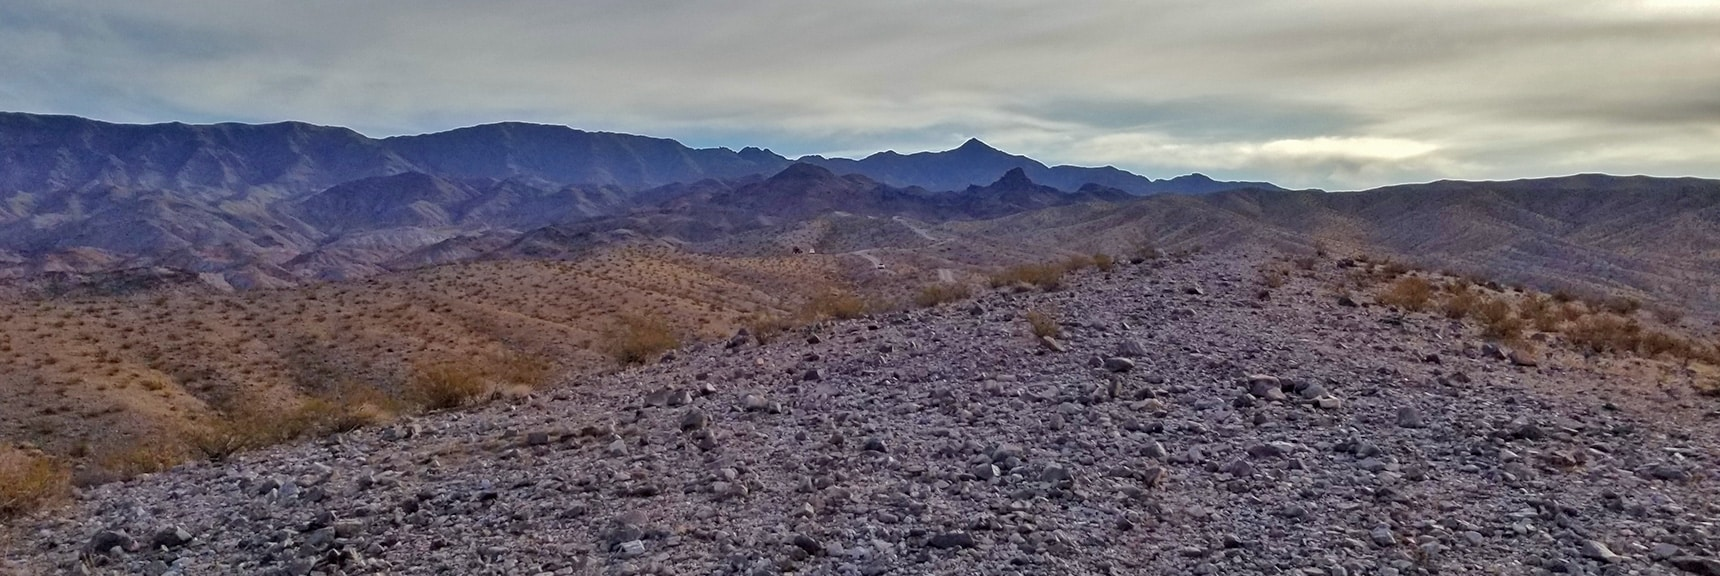 View Up North Mine Access Rd Toward Mt. Wilson | Fortification Hill | Lake Mead National Recreation Area, Arizona